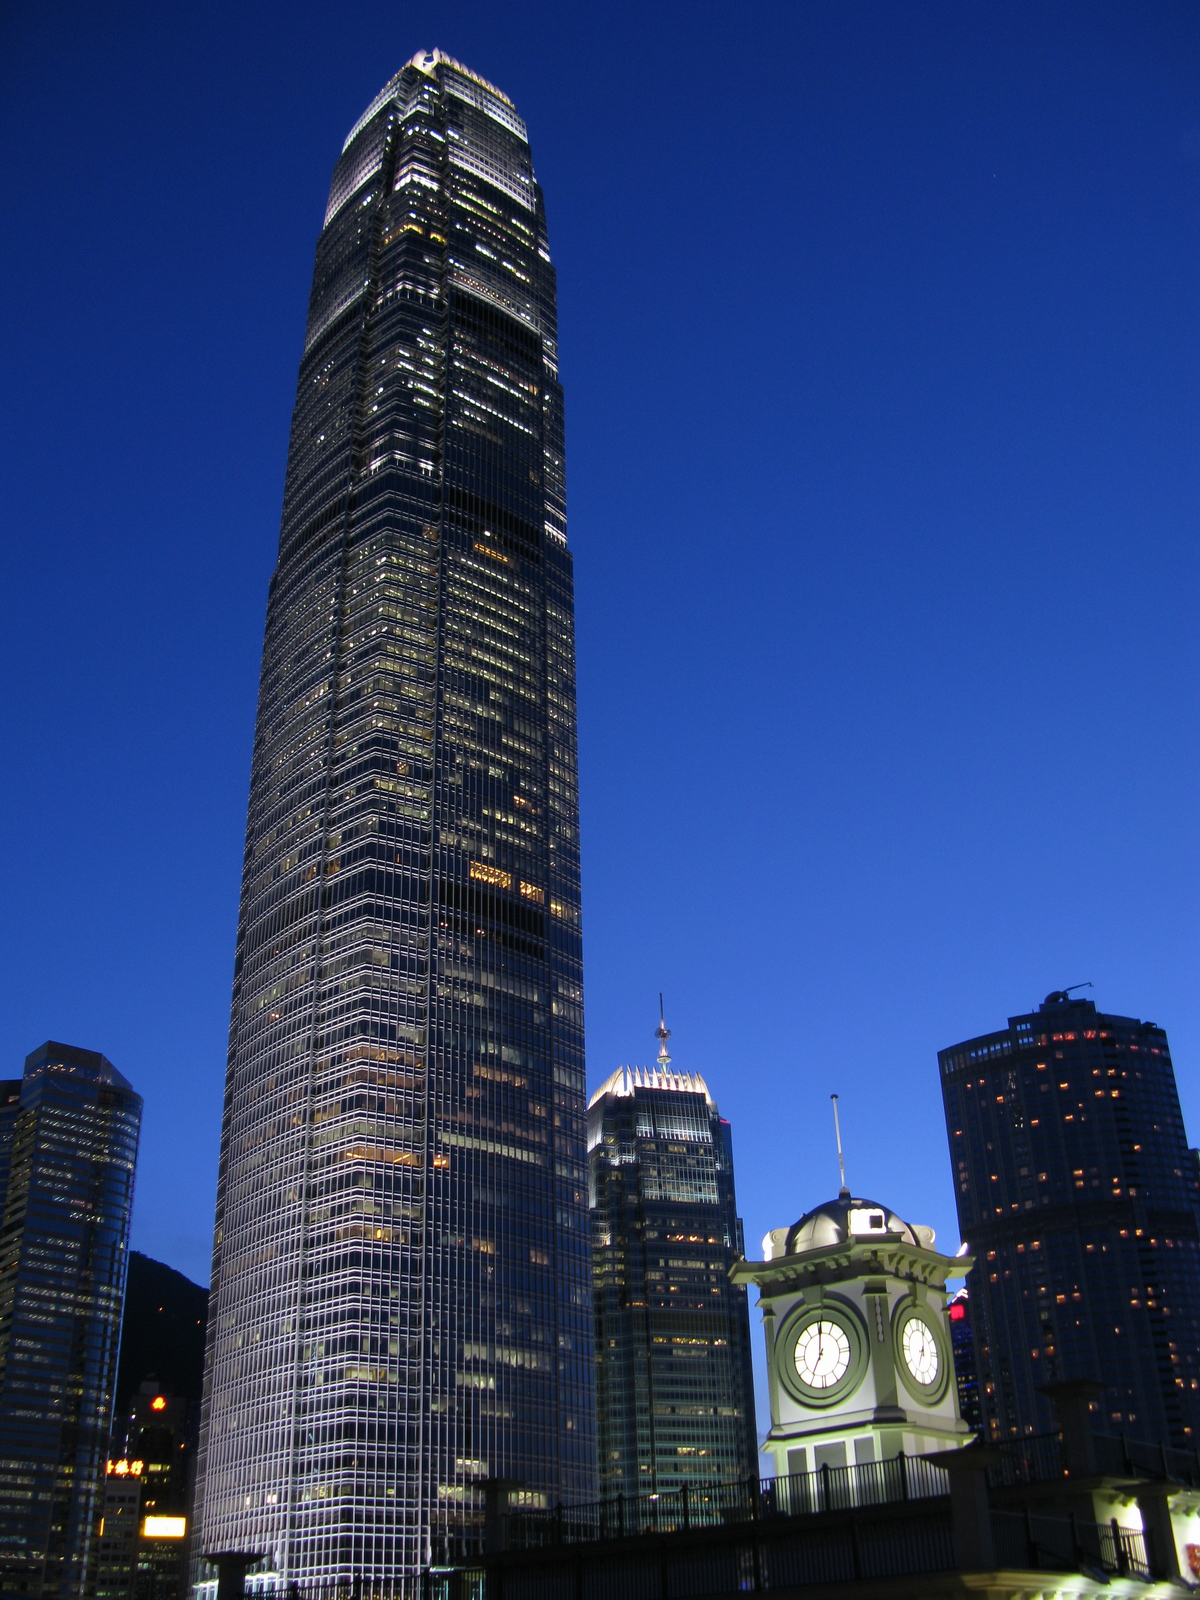 A brightly lit tall skyscraper at night.